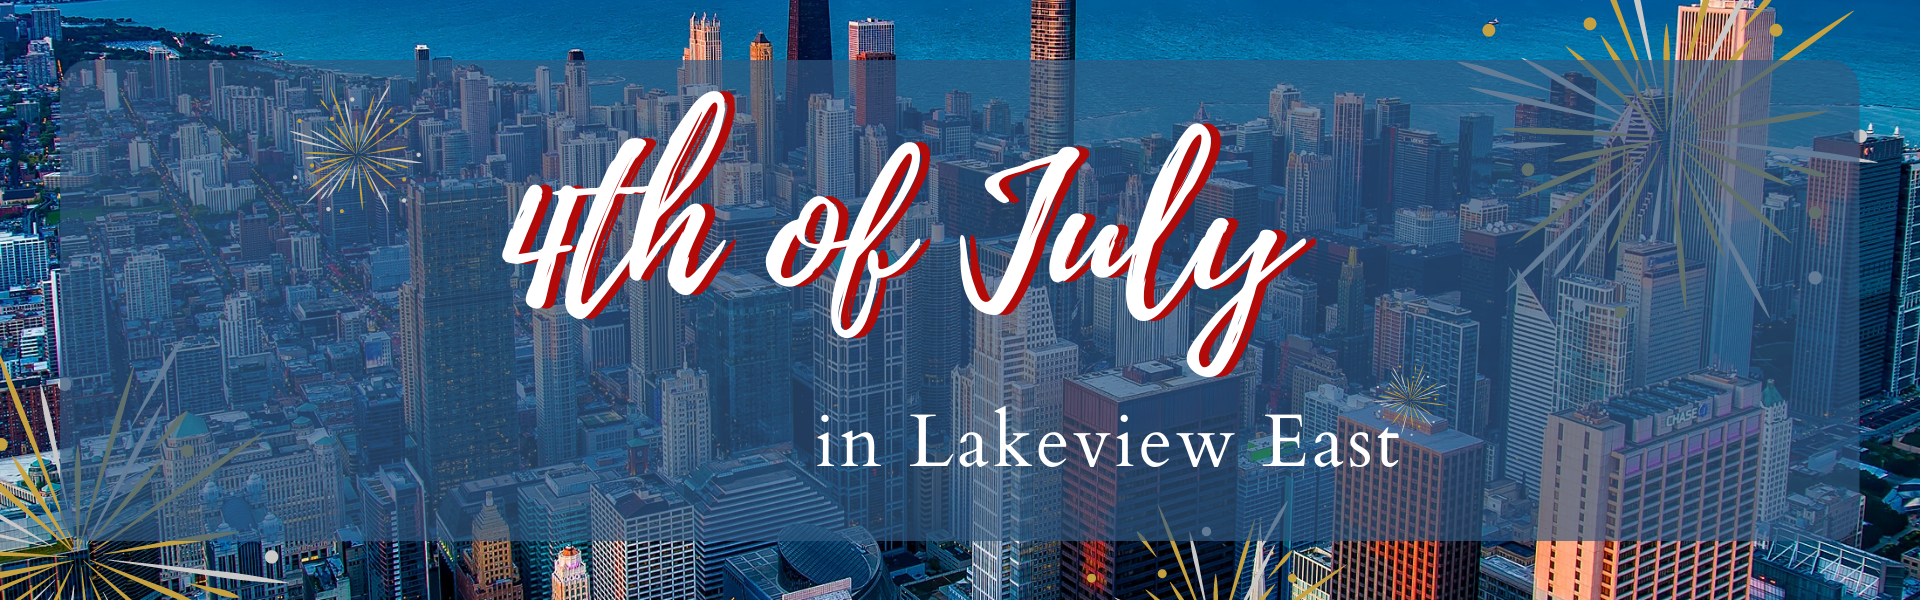 lakeview east chicago fourth 4 4th of july weekend things to do shop local bbq cocktails